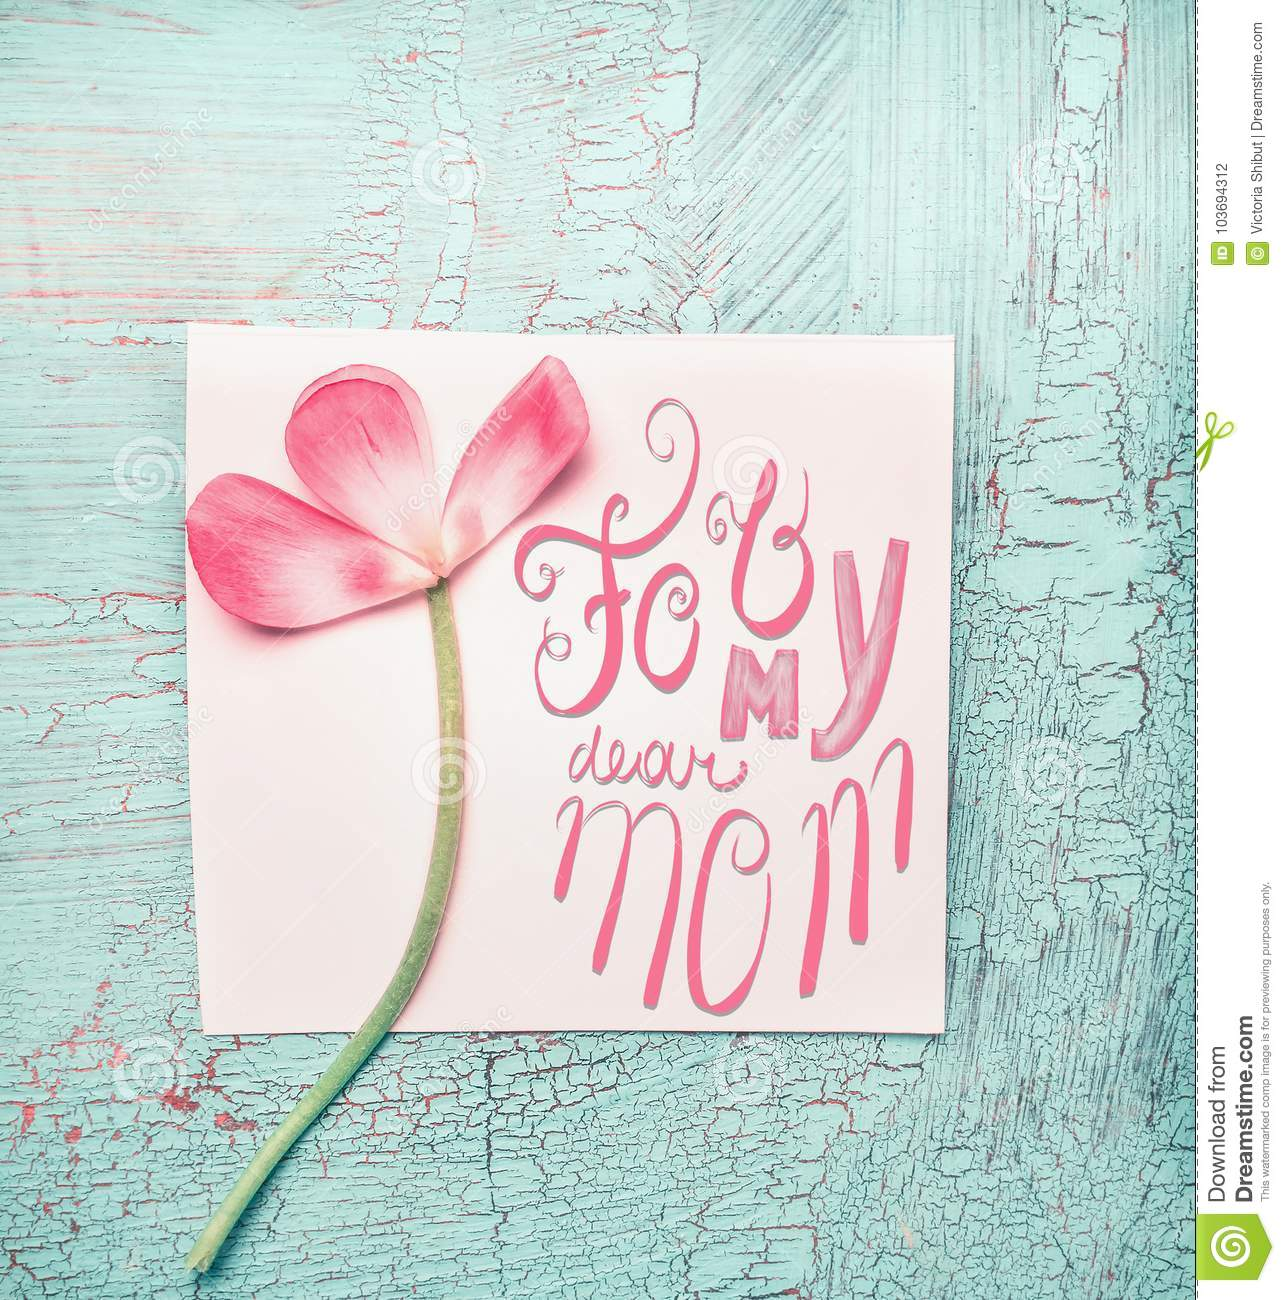 Lovely pink flowers for my dear mom on turquoise shabby chic lovely pink flowers for my dear mom on turquoise shabby chic background top view mightylinksfo